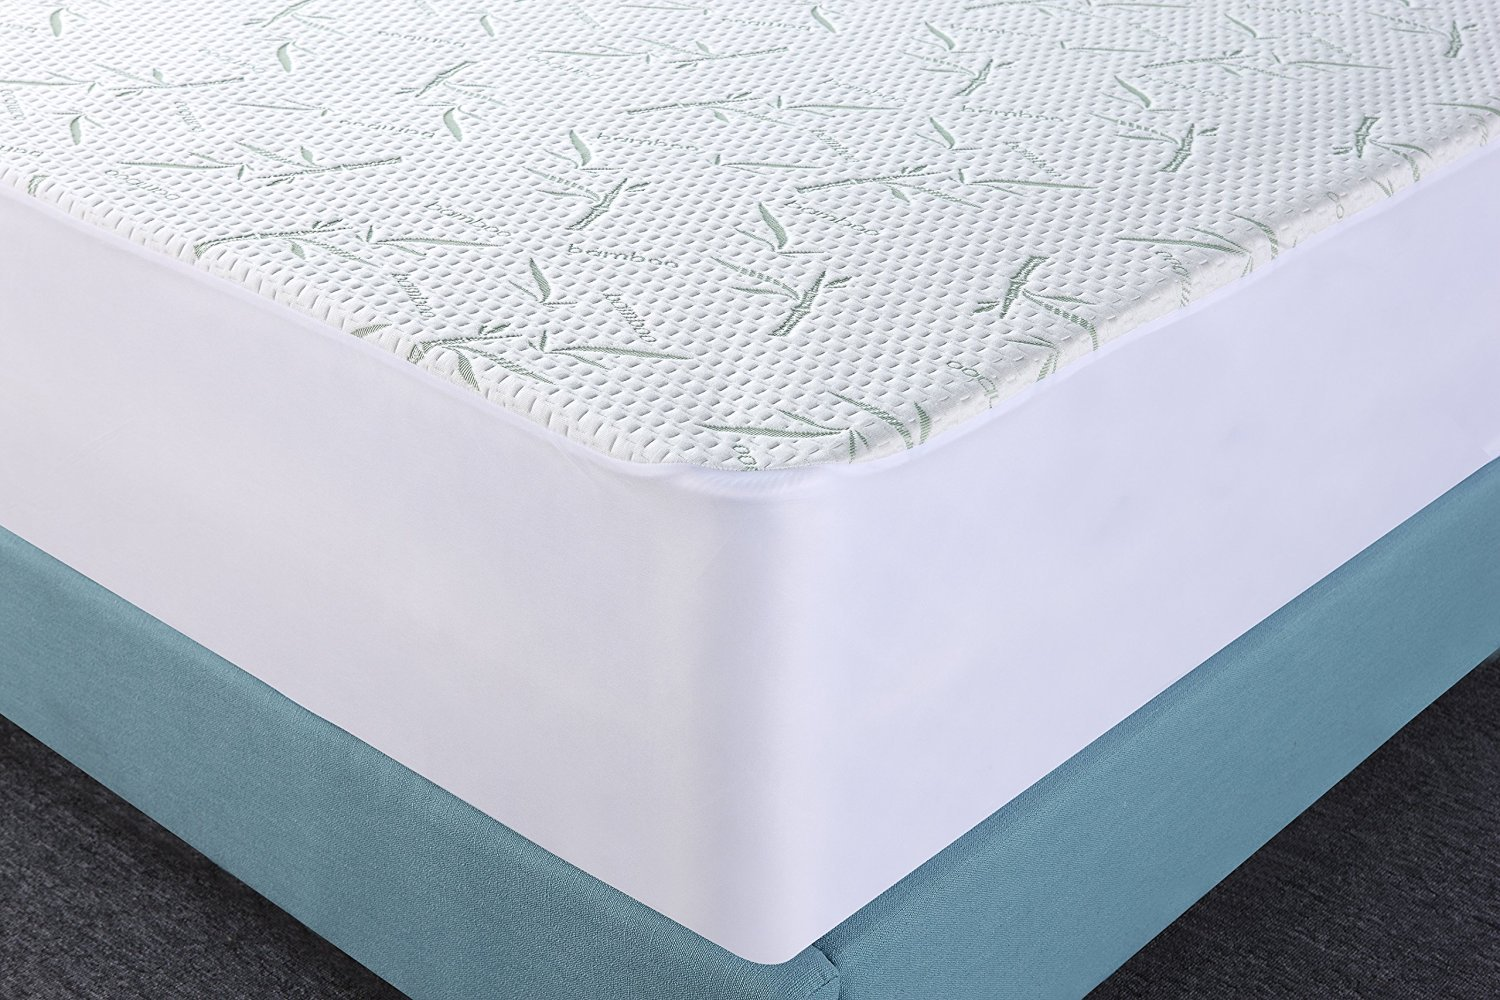 Amazon.com: Waterproof Bamboo Mattress Protector - Hypoallergenic fitted Mattress  Cover - Breathable Cool Flow Technology - Vinyl Free (Queen) - by Utopia ...